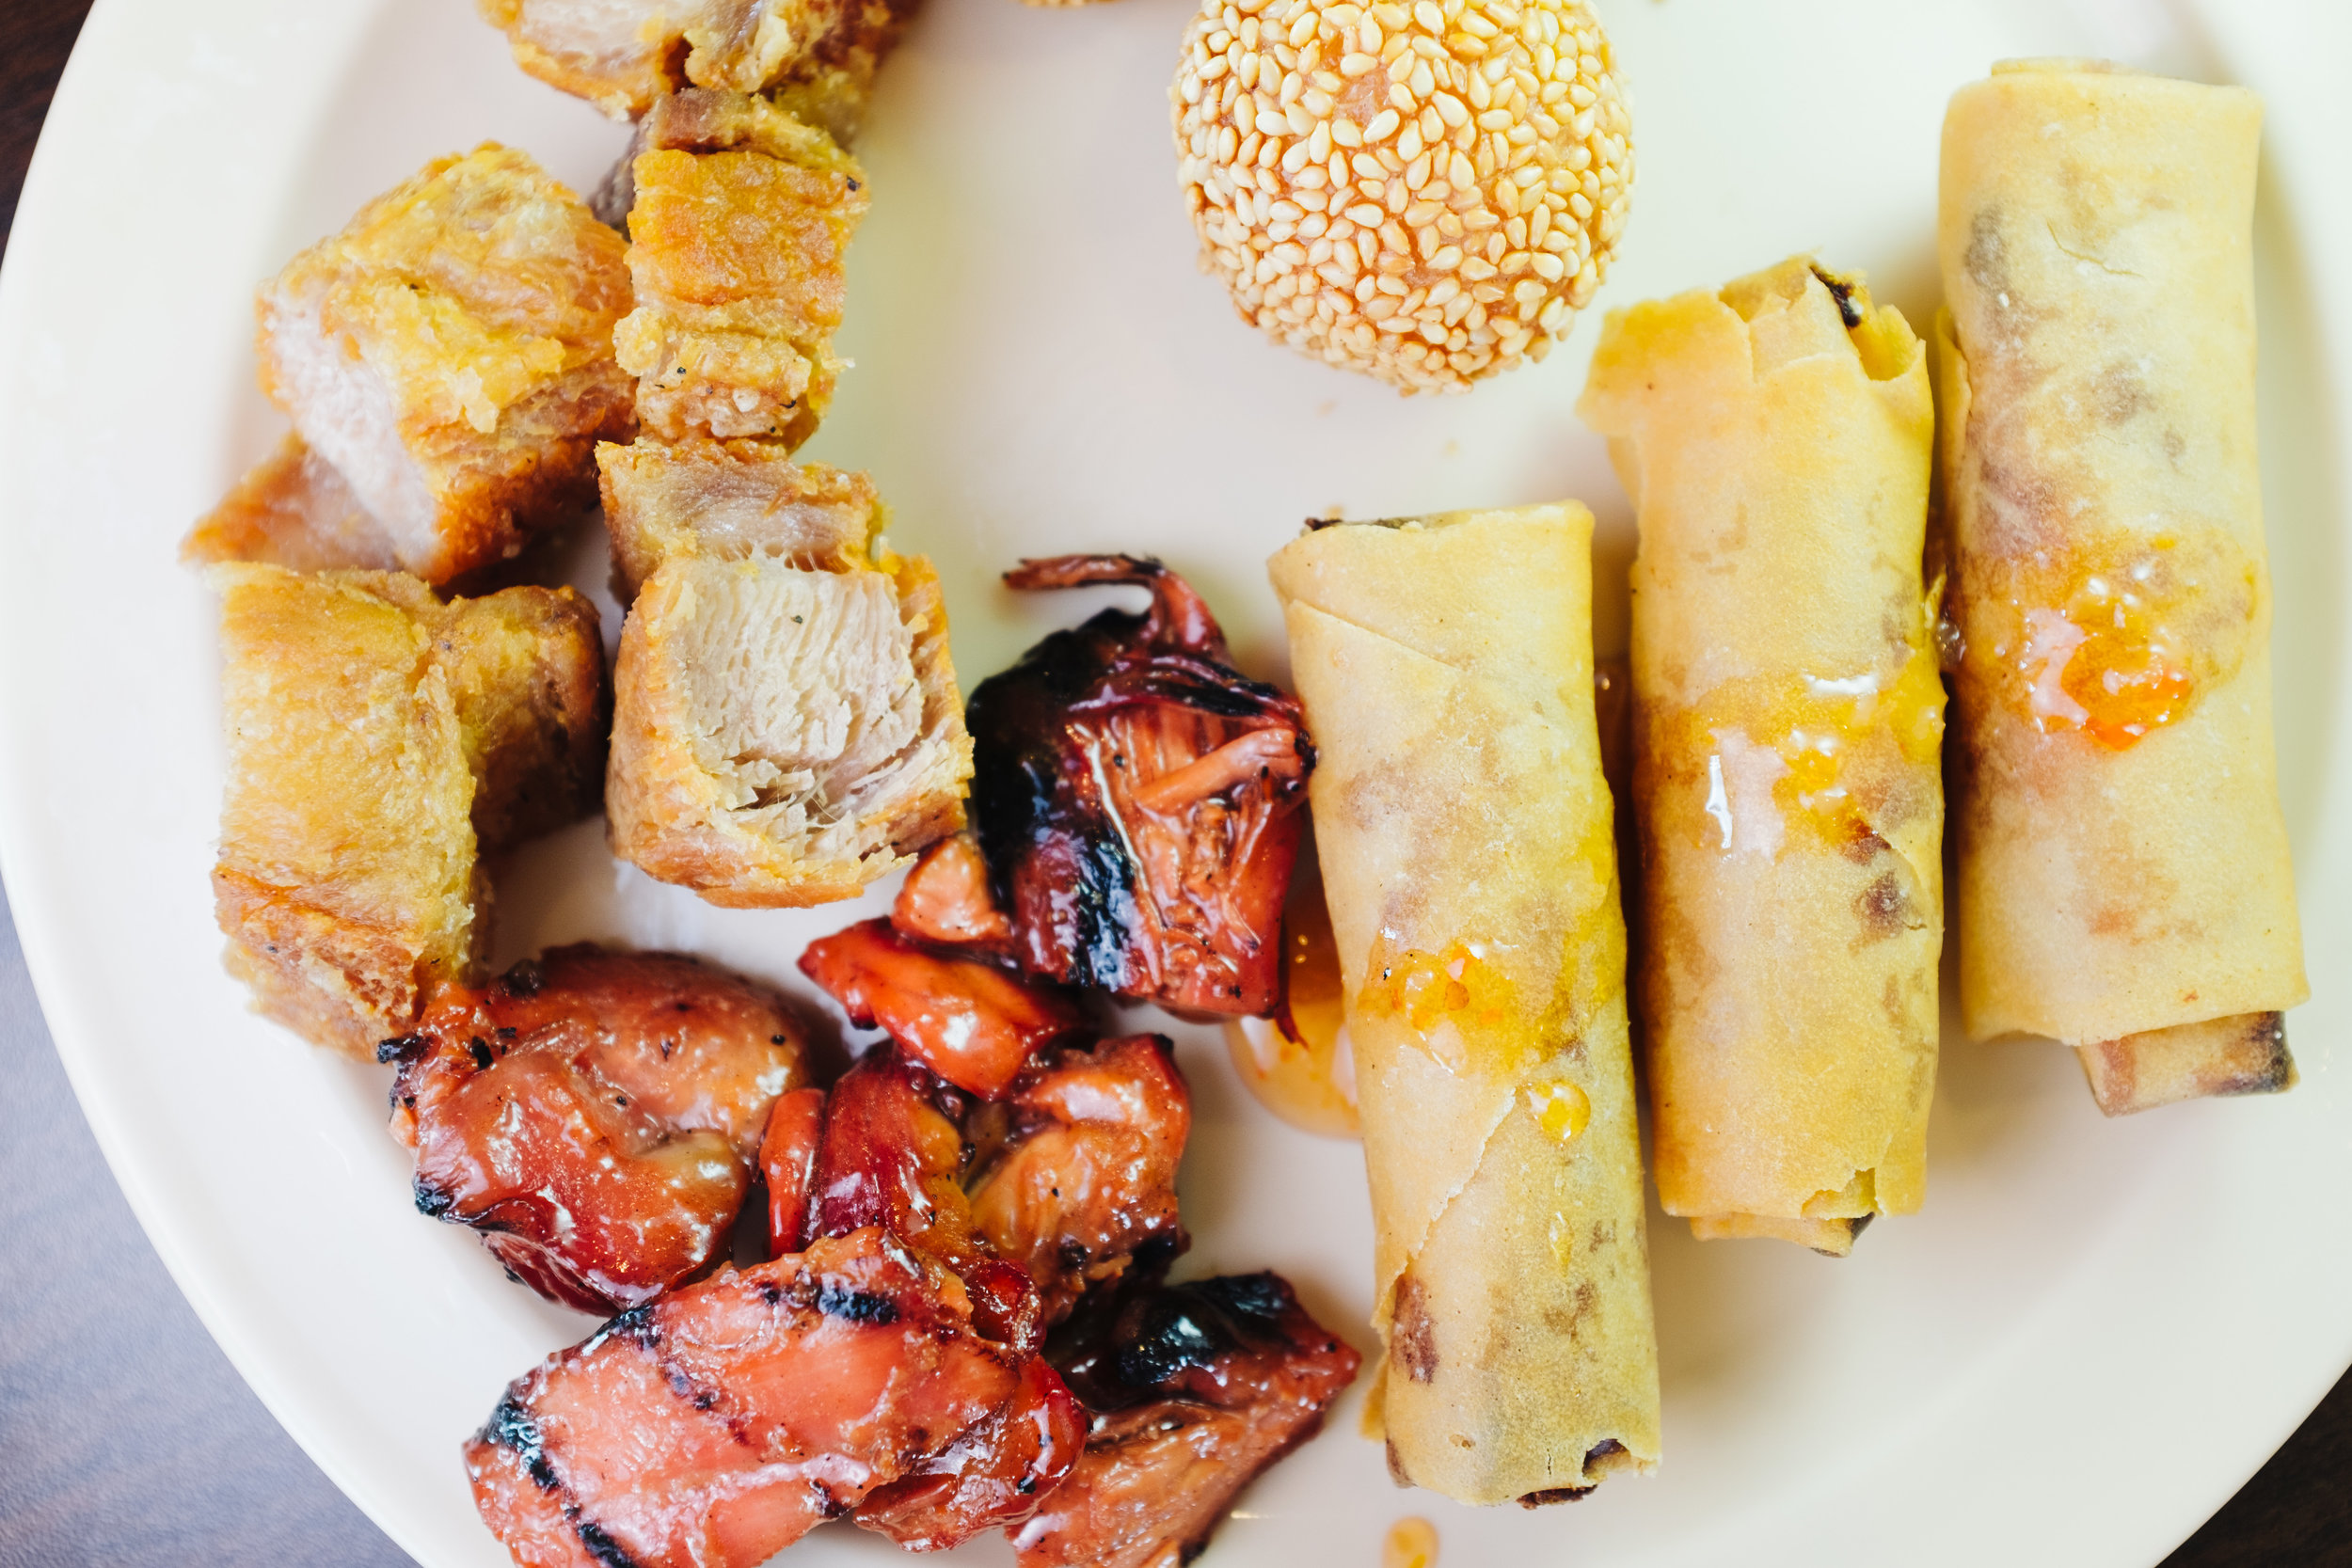 Filipino food provides a fusion of pan-asian delicacies infused with hints of Spanish cuisine.